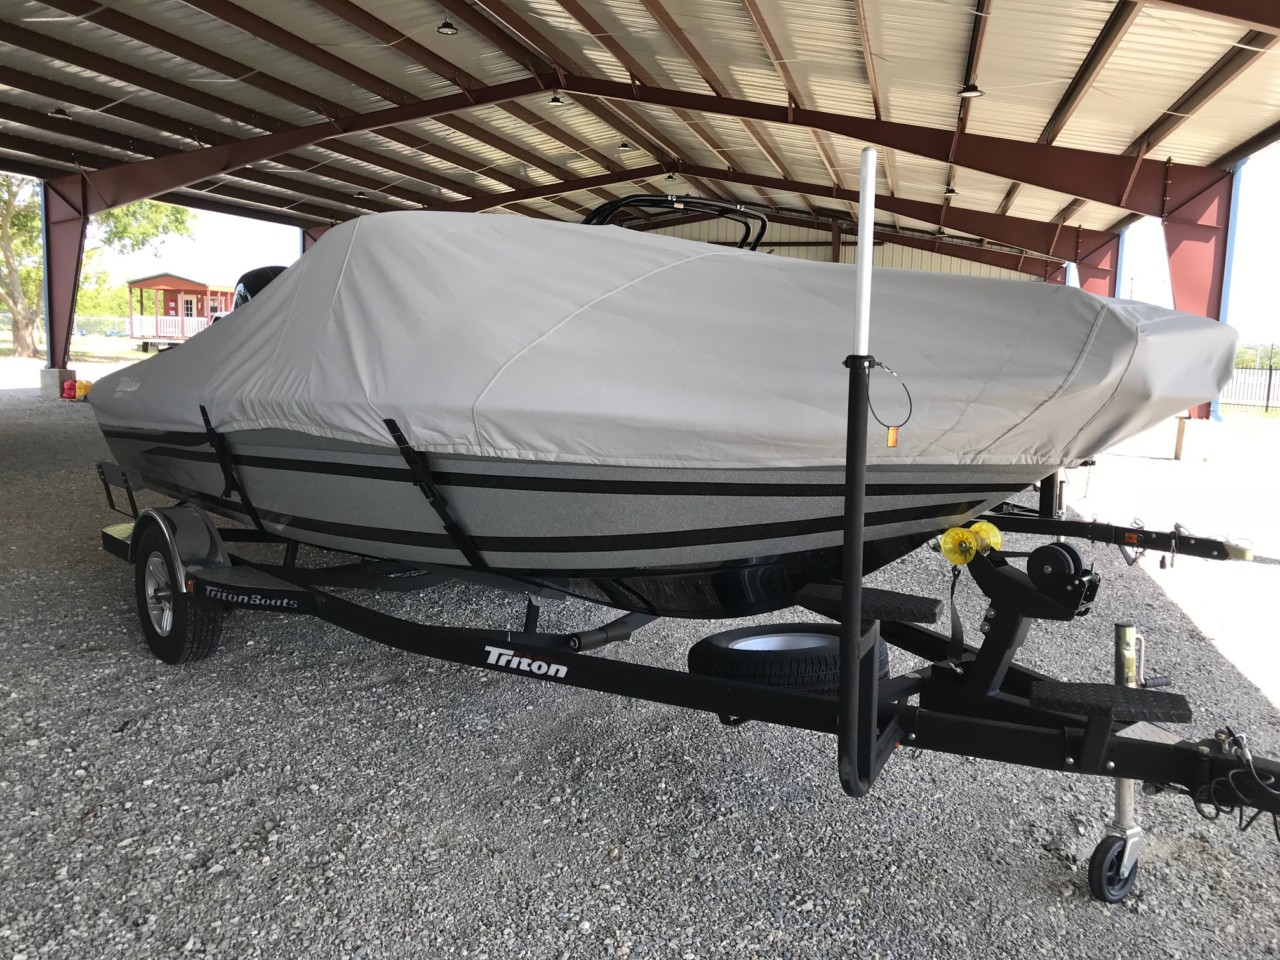 2016 Triton 186 Fishunter W/ 150 Mercury 4stroke